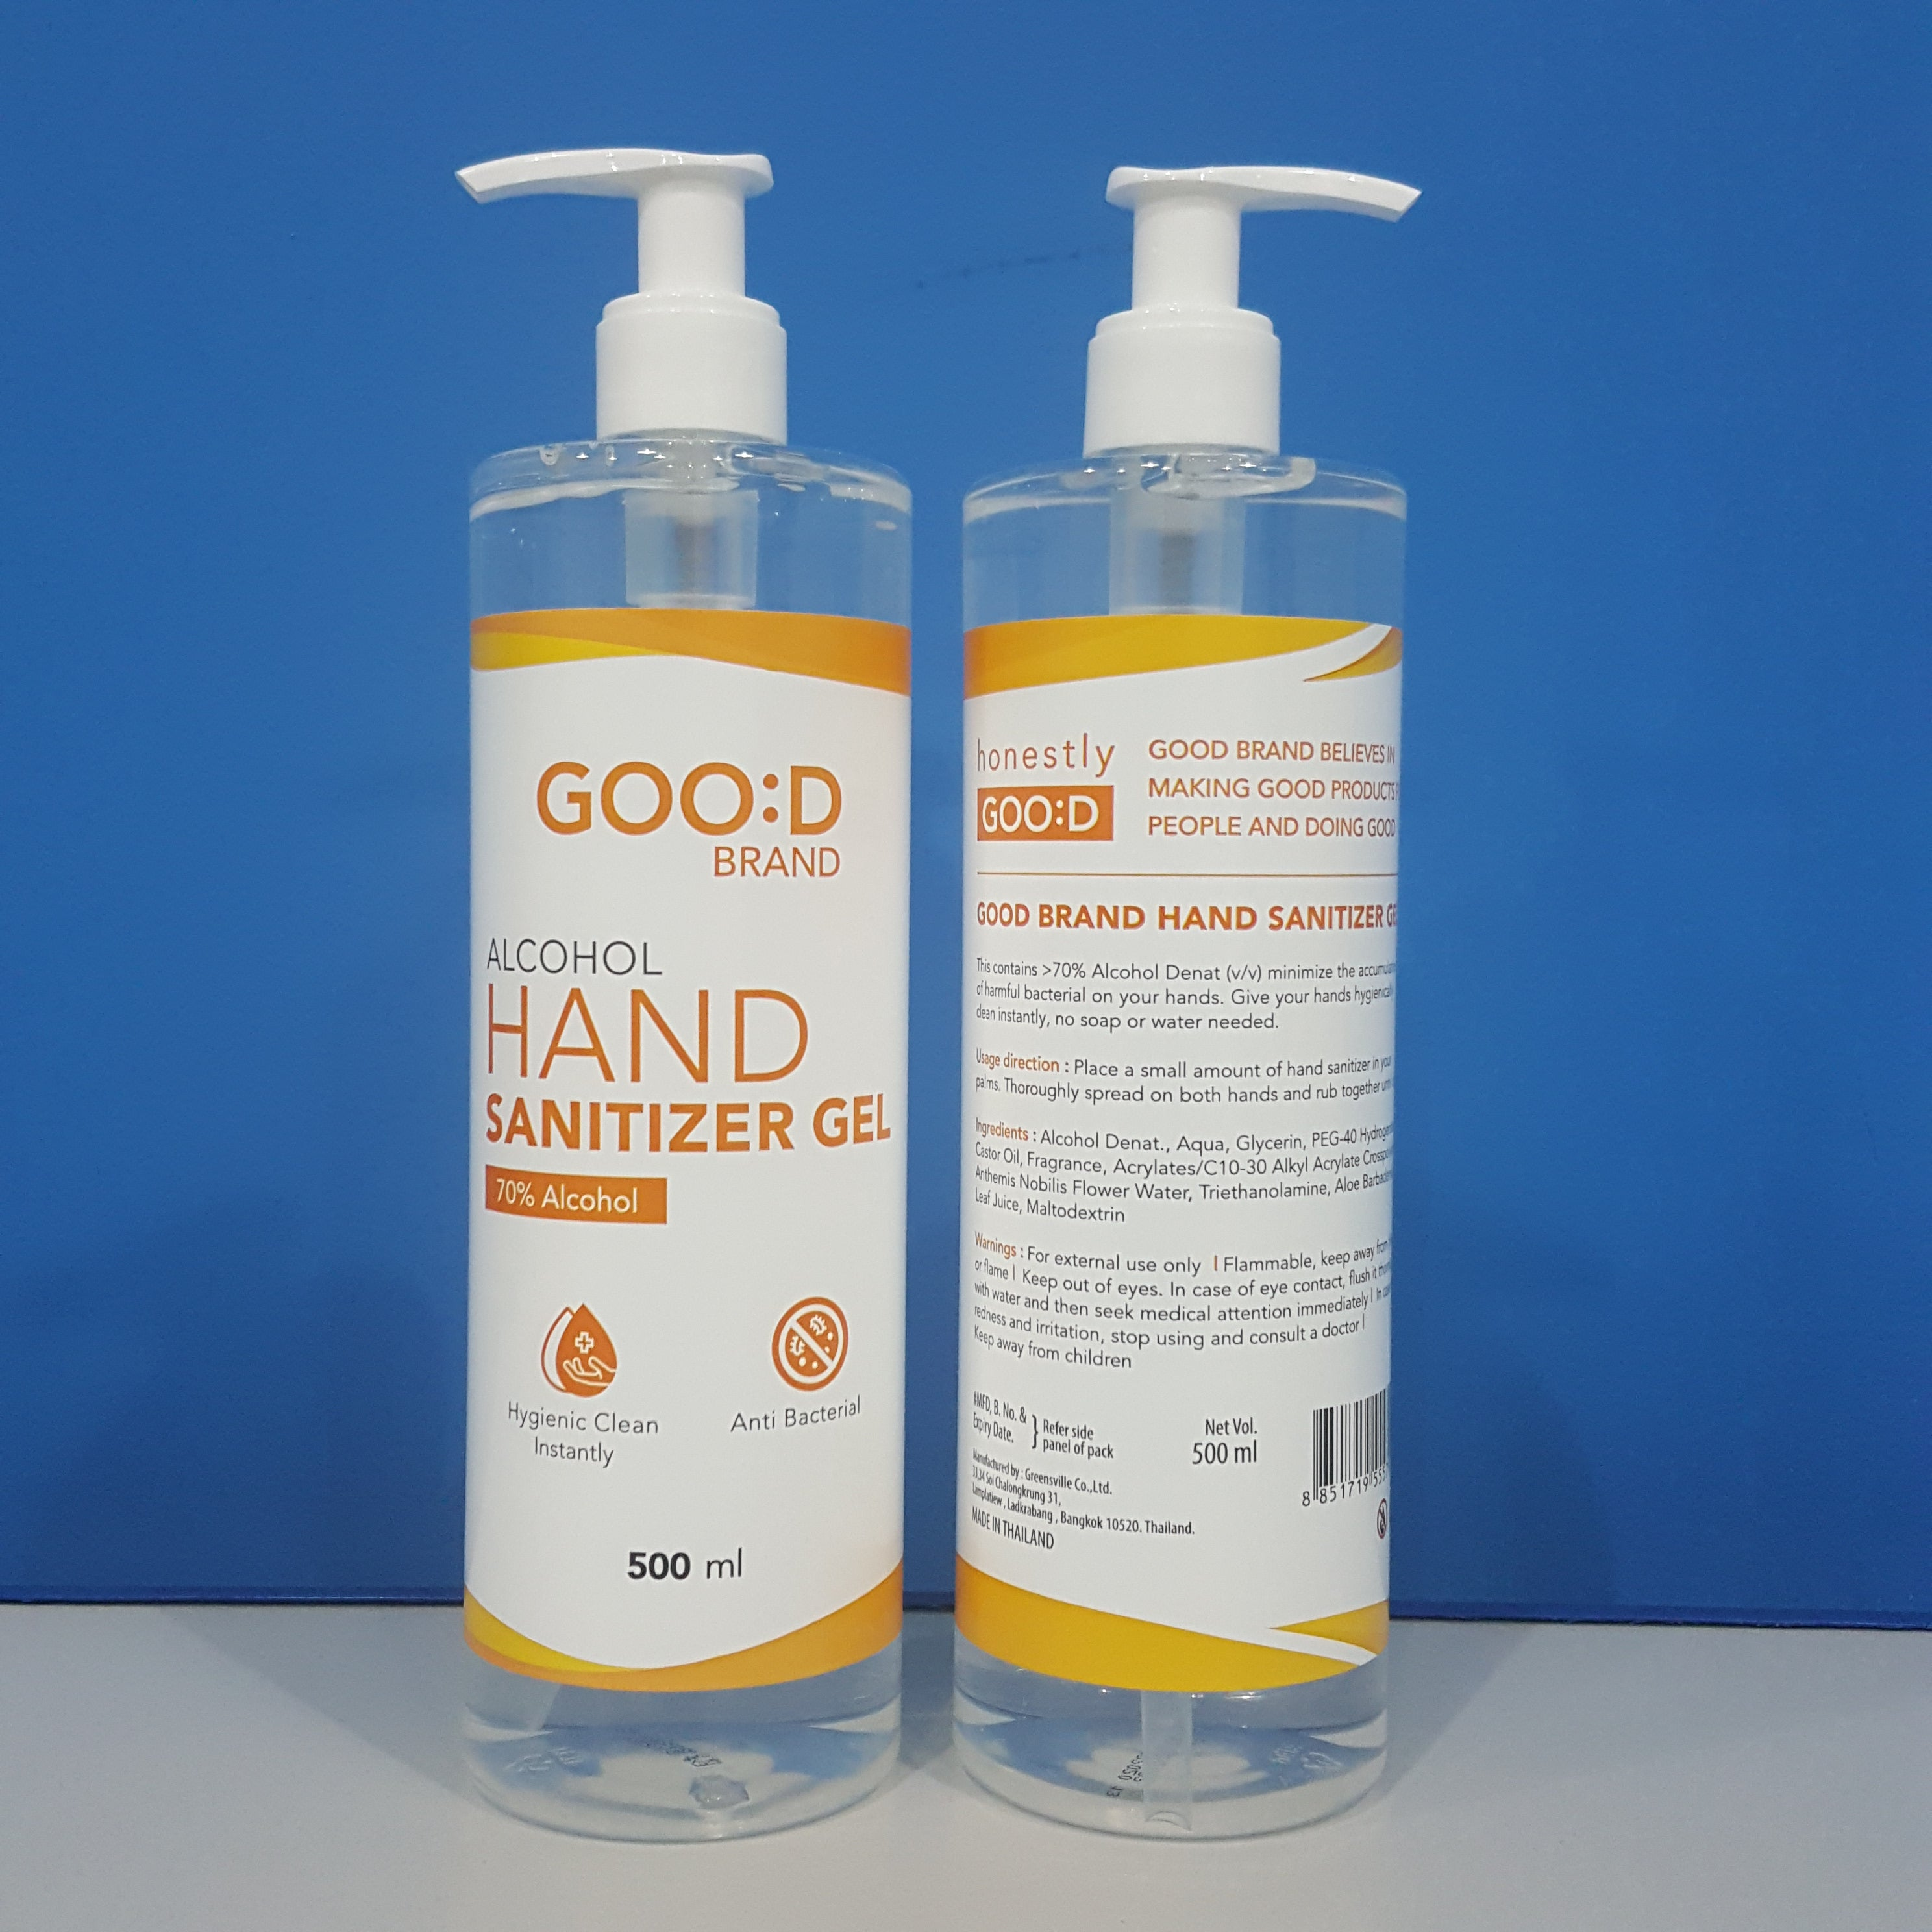 Good Brand Hand Sanitiser Gel 500ml